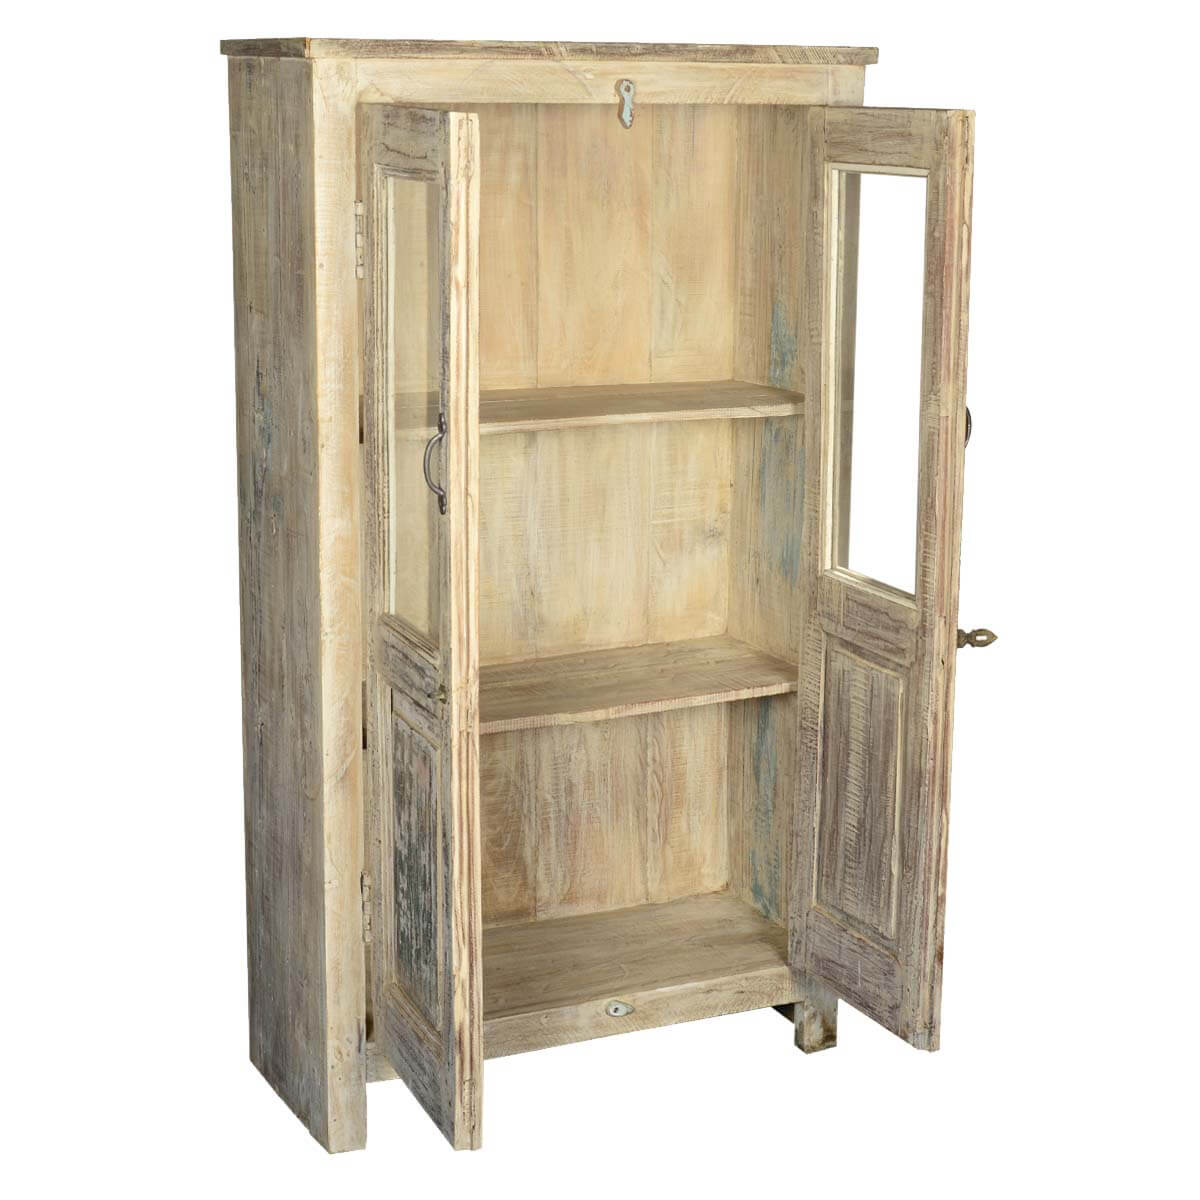 tall wood storage cabinets with doors and shelves 2 door reclaimed wood storage cabinet 27084